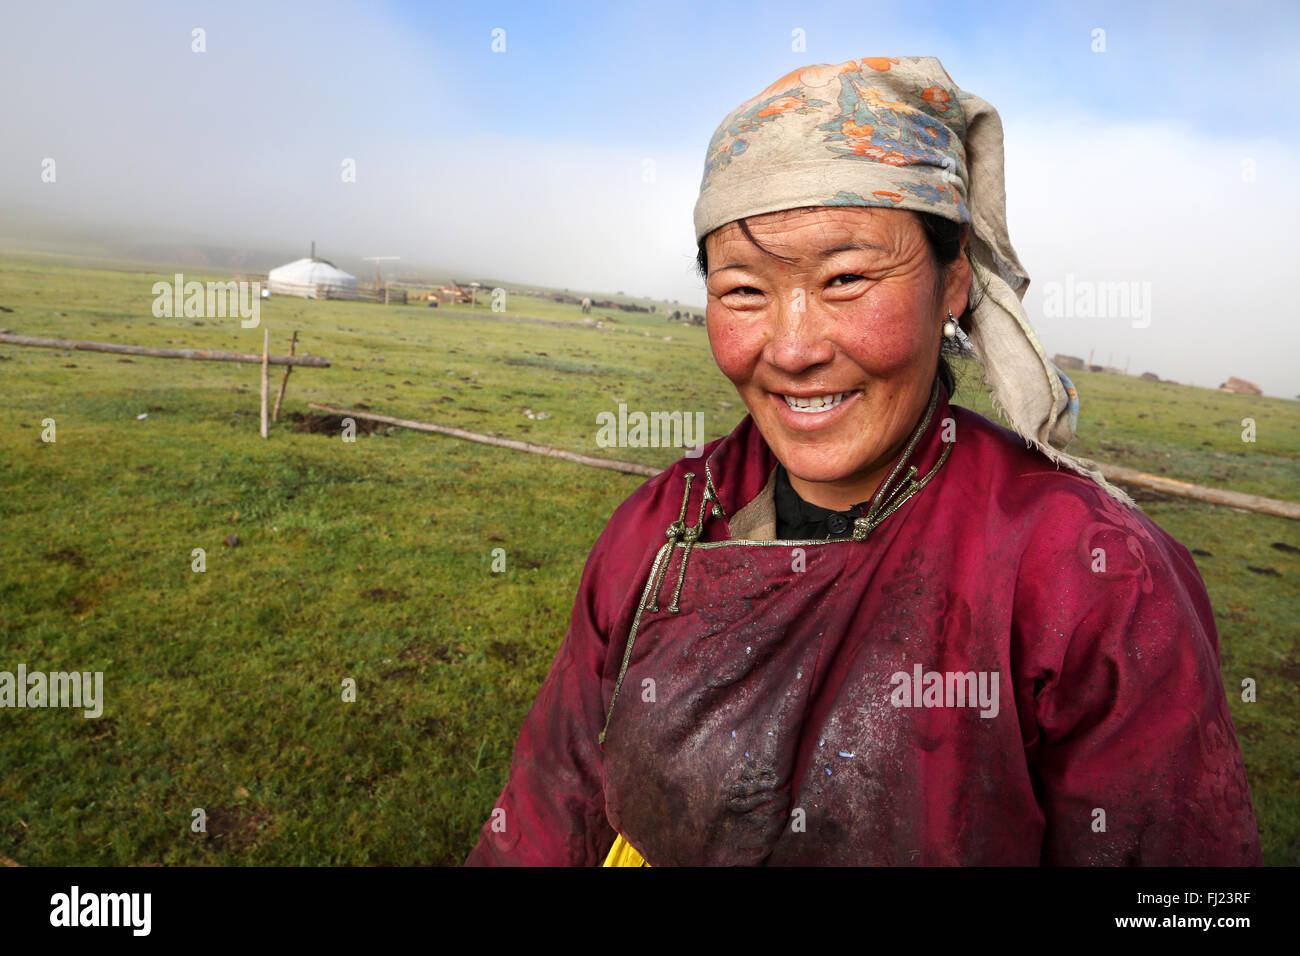 Portrait of Mongolian woman with traditional costume dress called 'deel' - Stock Image